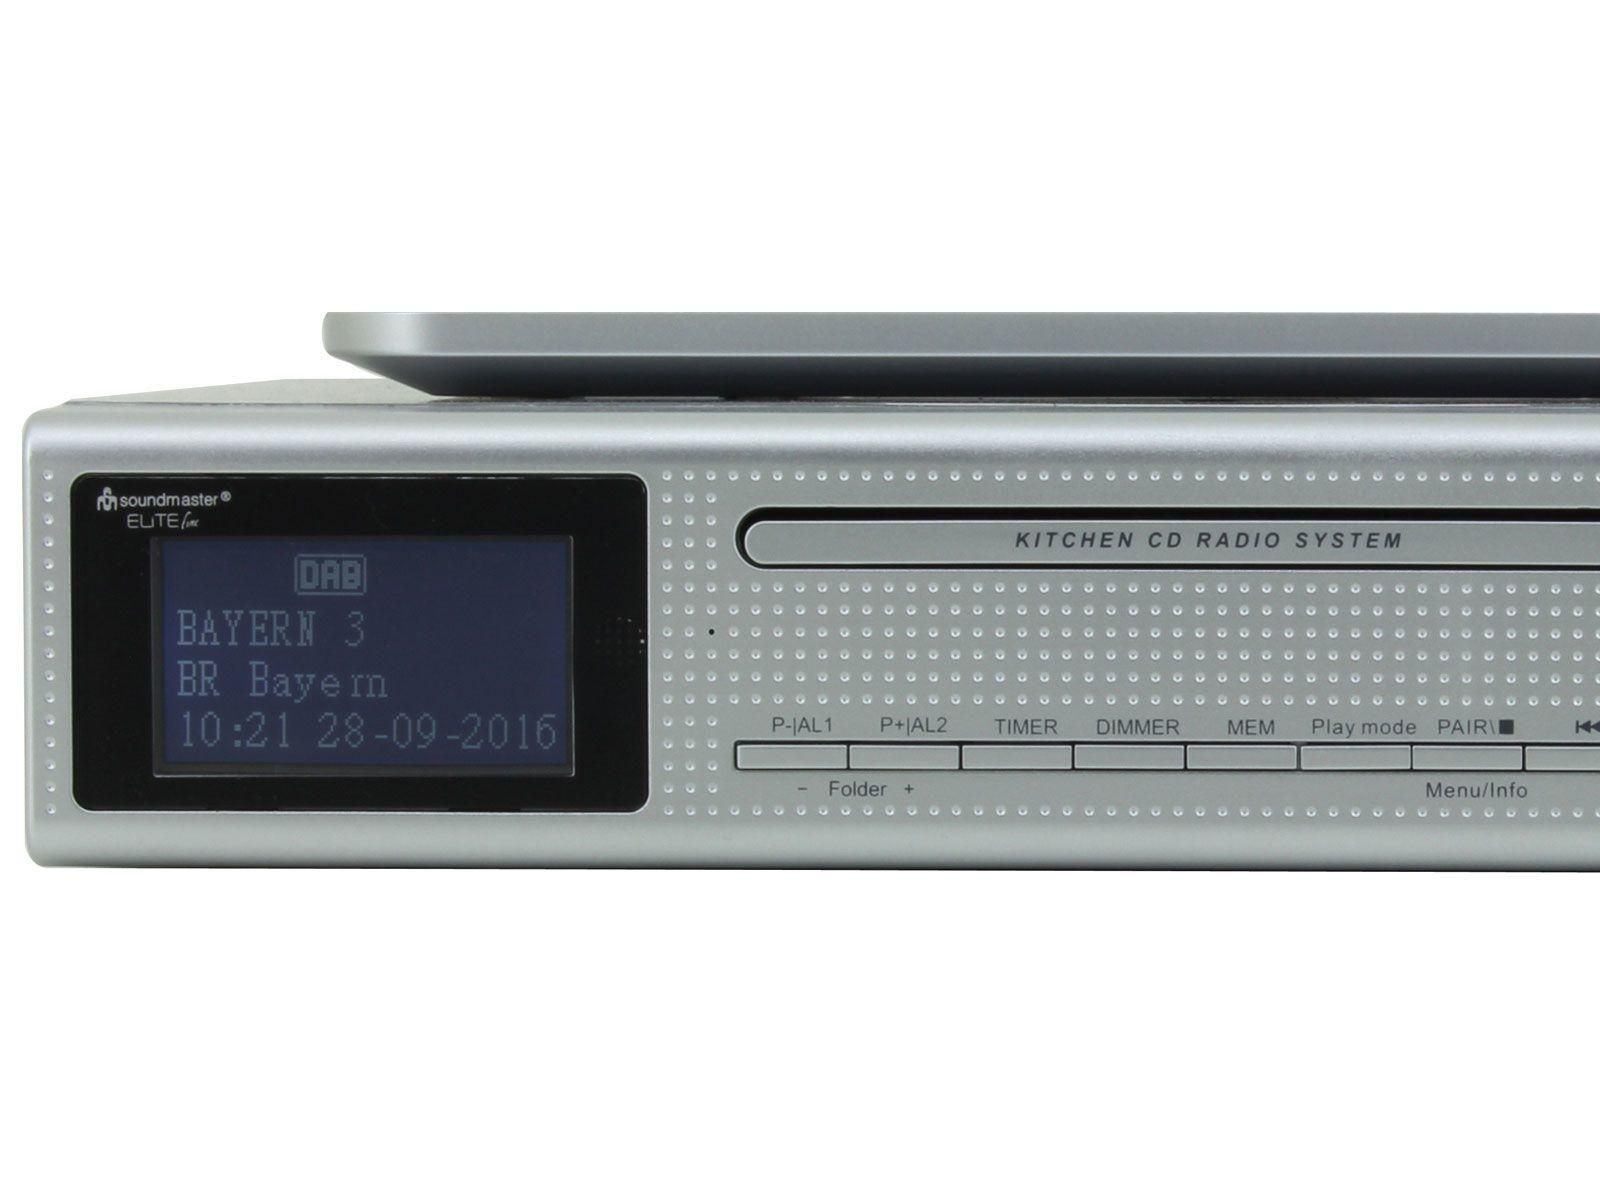 Buy Soundmaster Ur2195si Under Cabinet Kitchen Radio